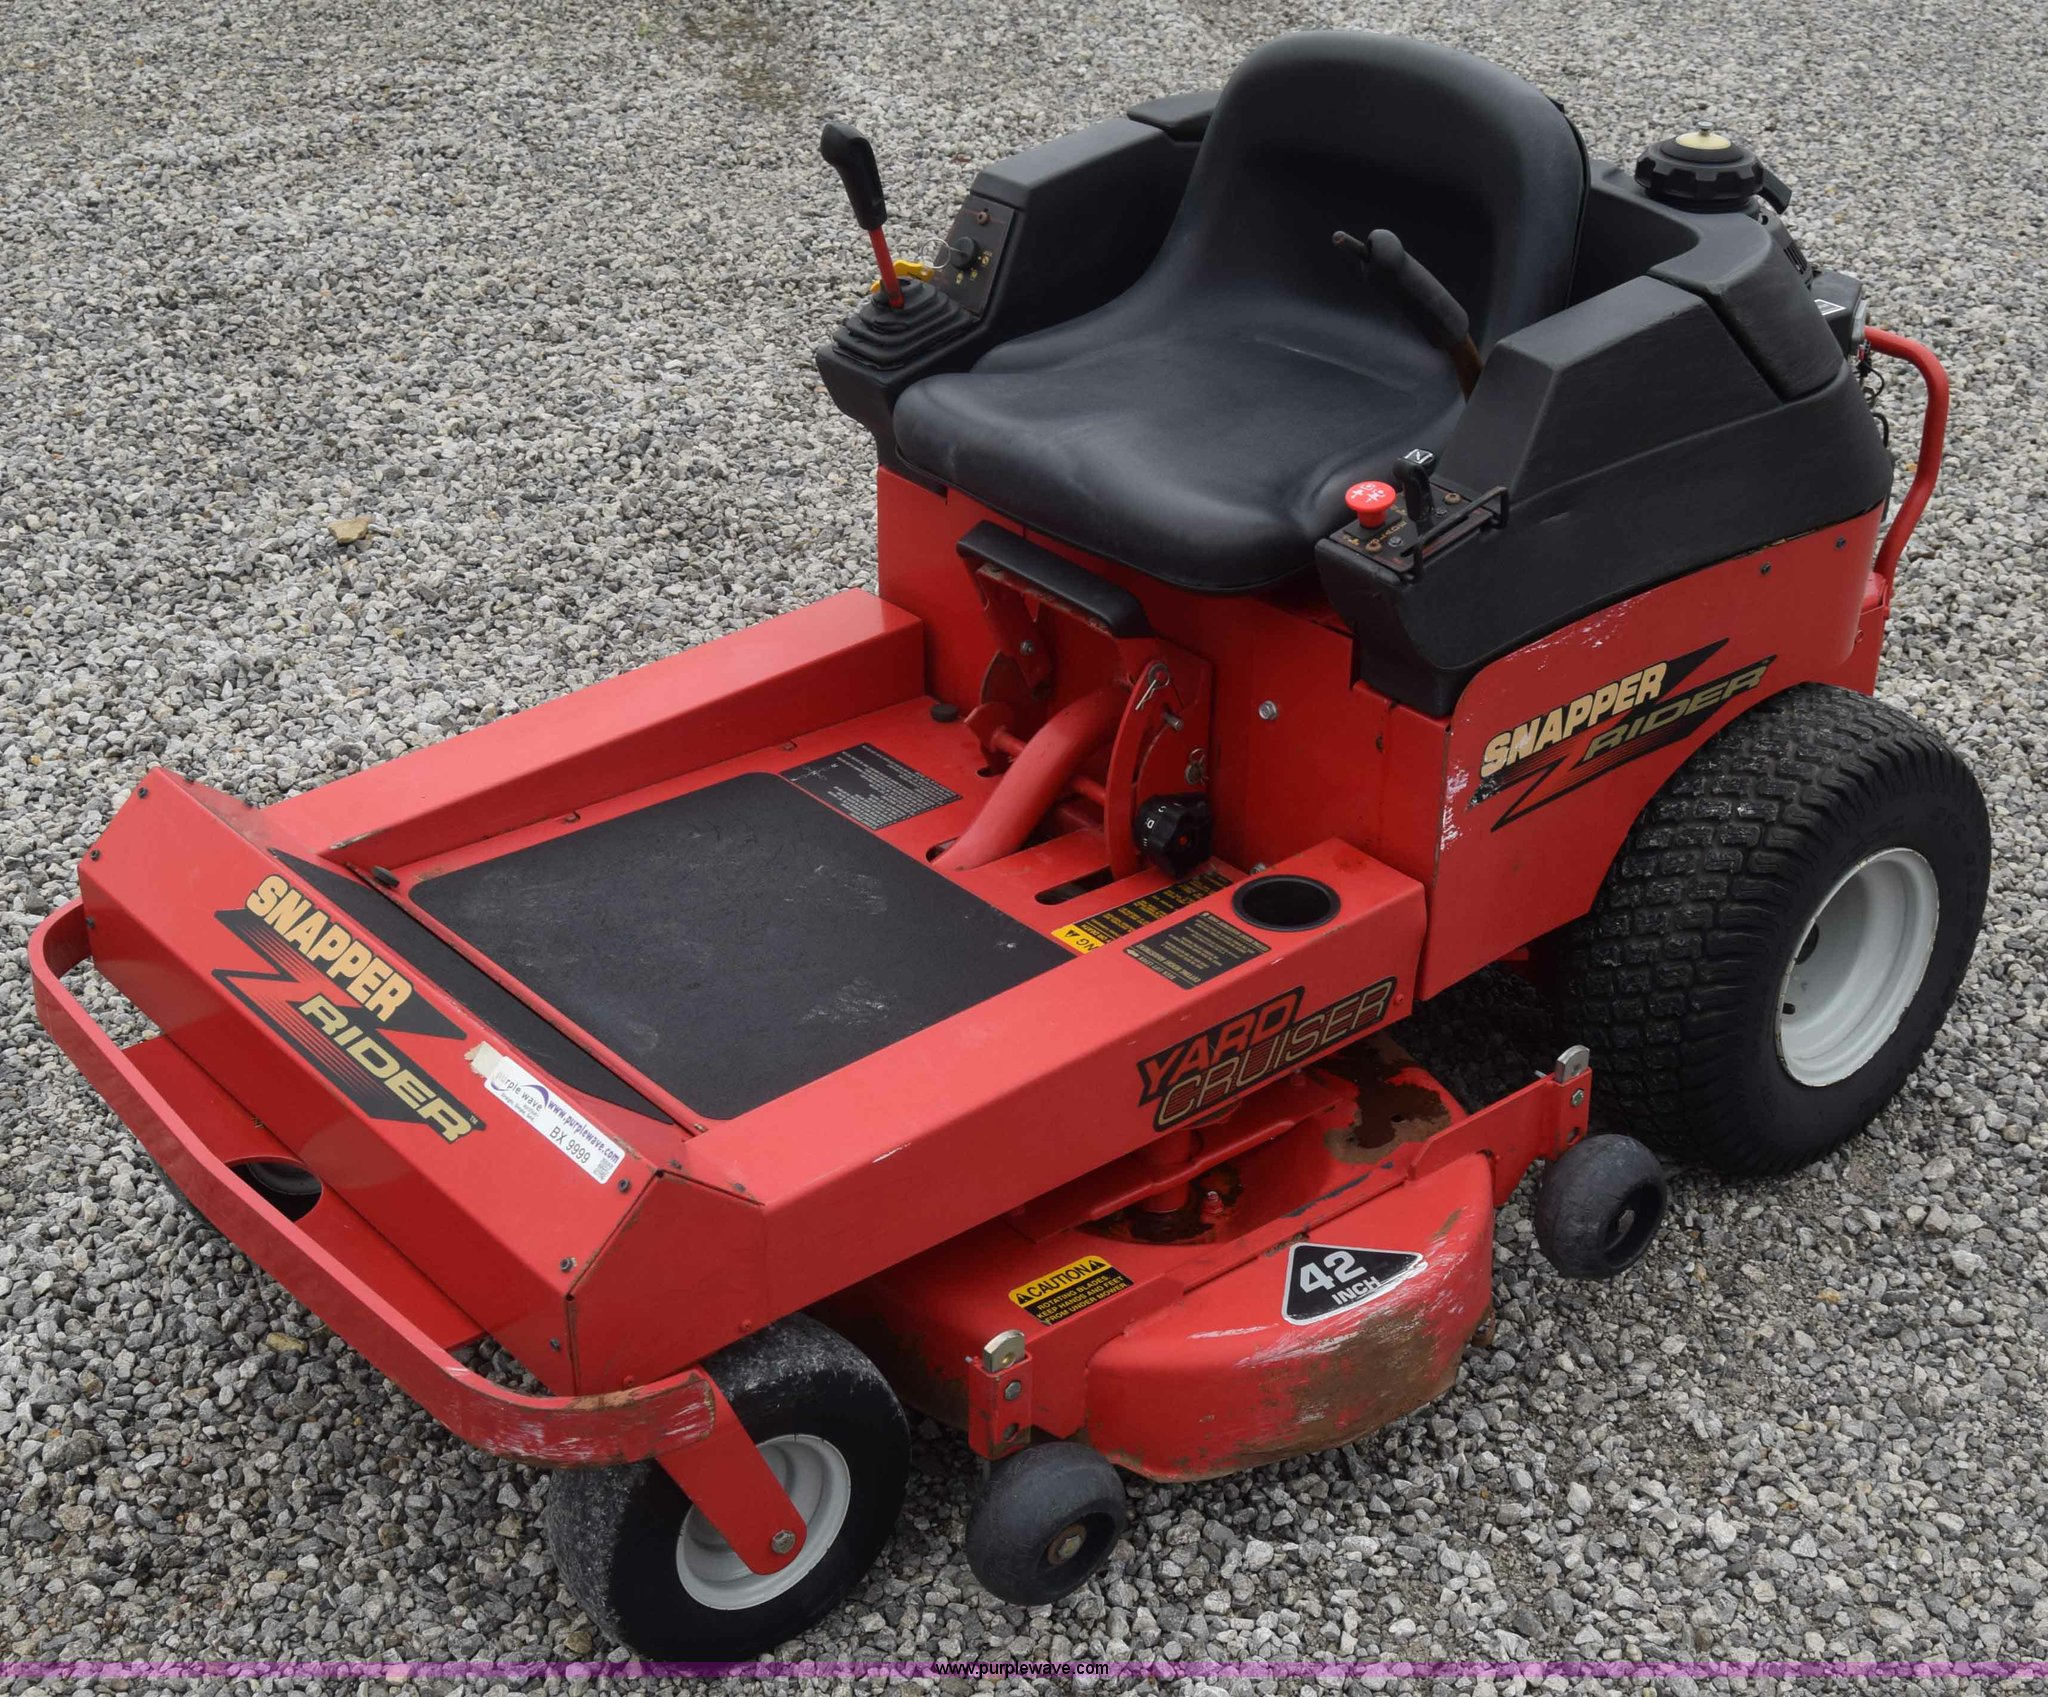 42 Snapper Riding Mower